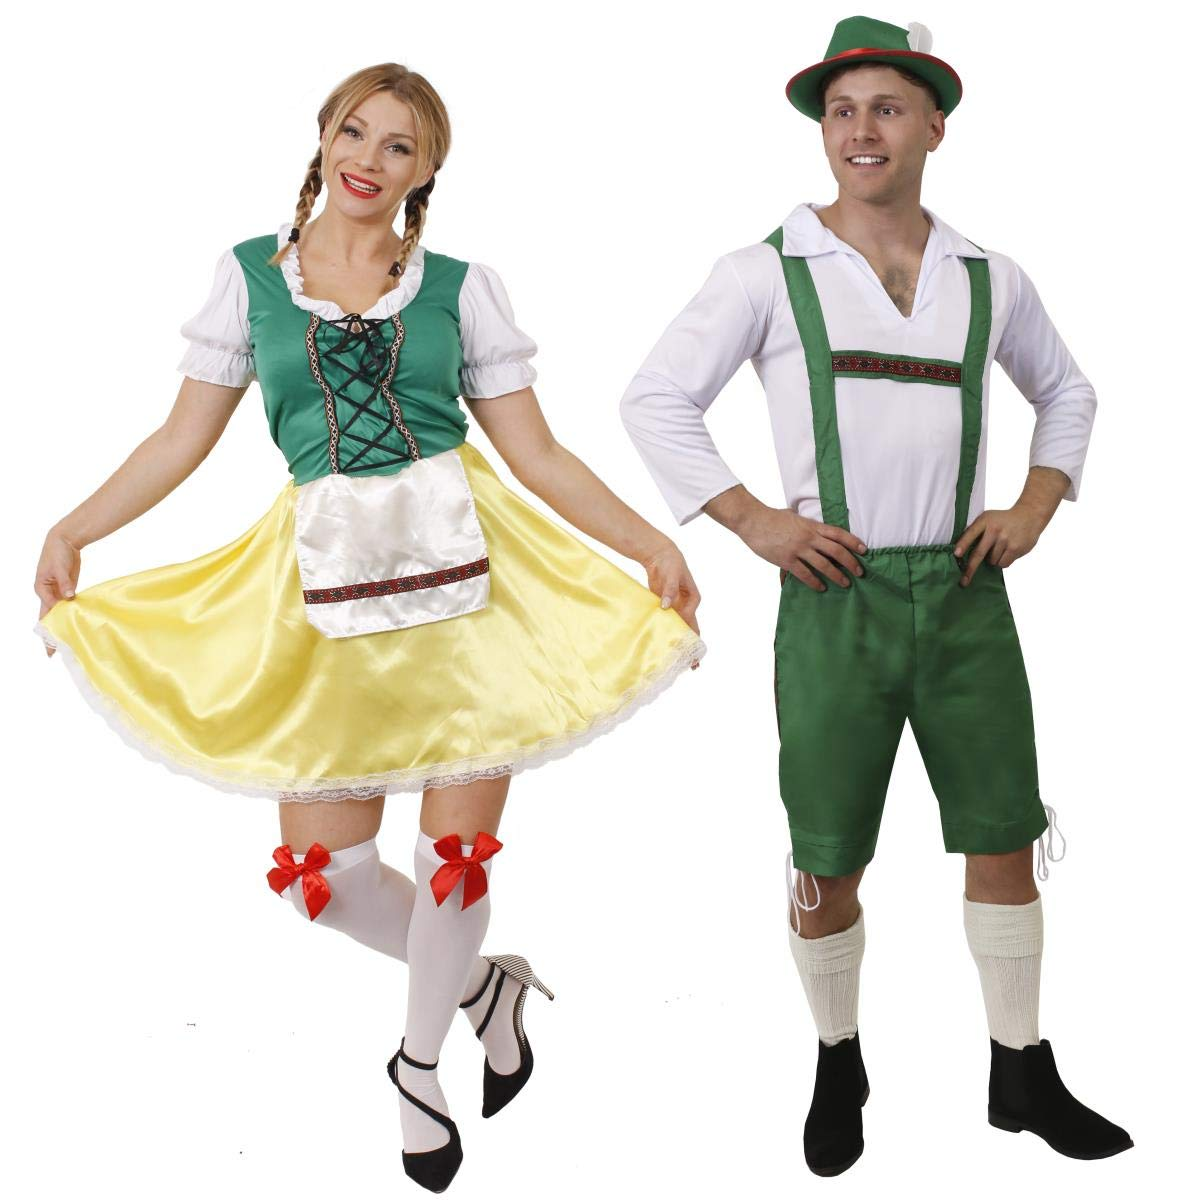 b072191932d LADIES BAVARIAN BEER GIRL FANCY DRESS COSTUME OKTOBERFEST WOMENS BEER  GERMAN MAID WENCH BEER FESTIVAL GREEN & YELLOW DRESS WITH APRON SIZES 8-10